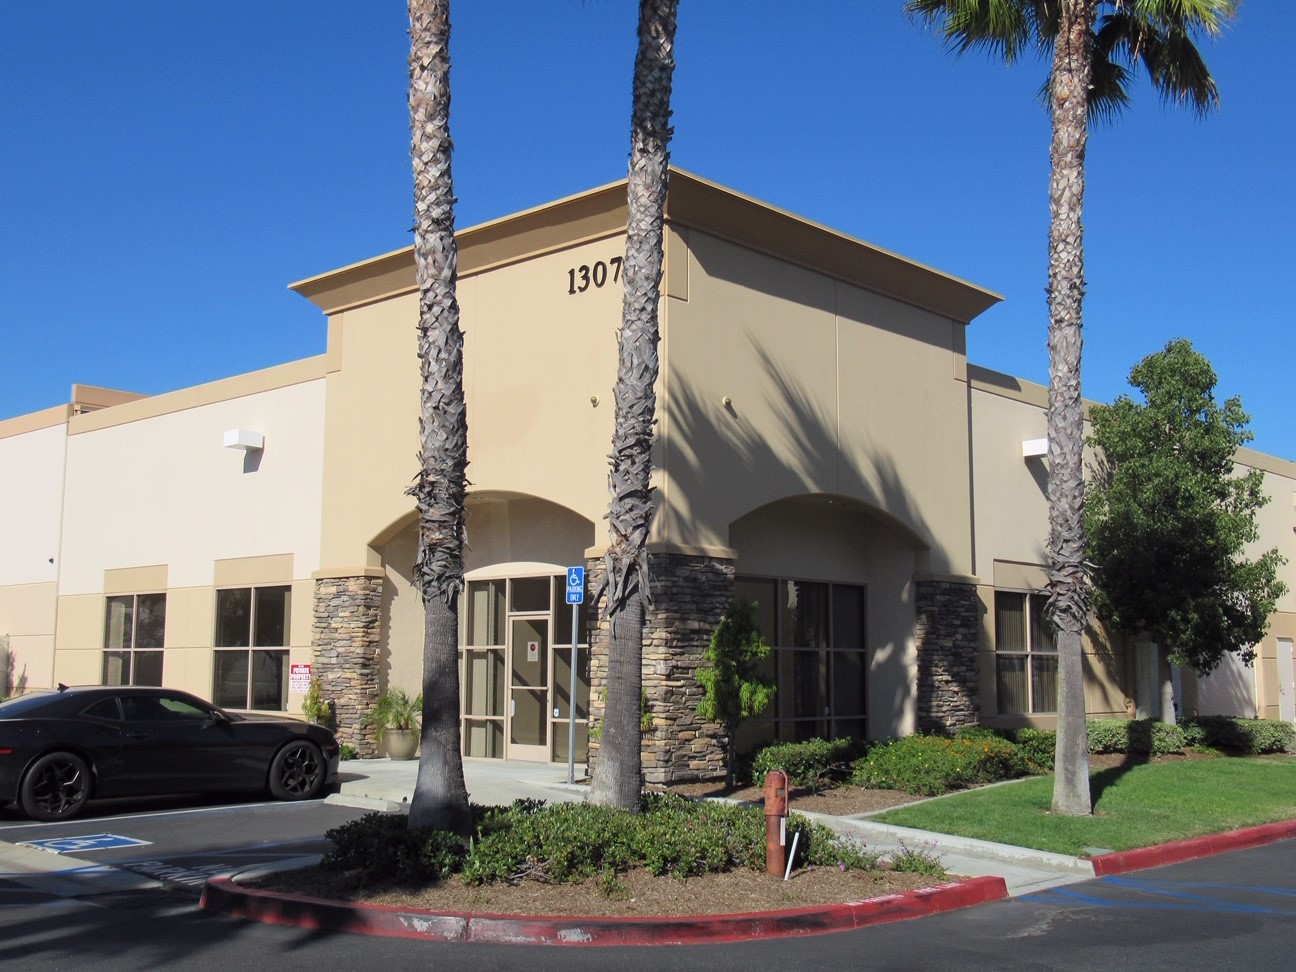 1307 Calle Avanzado • San Clemente • 4,106sf Industrial Building • 1,256sf Office • 2,850sf Warehouse • For Lease